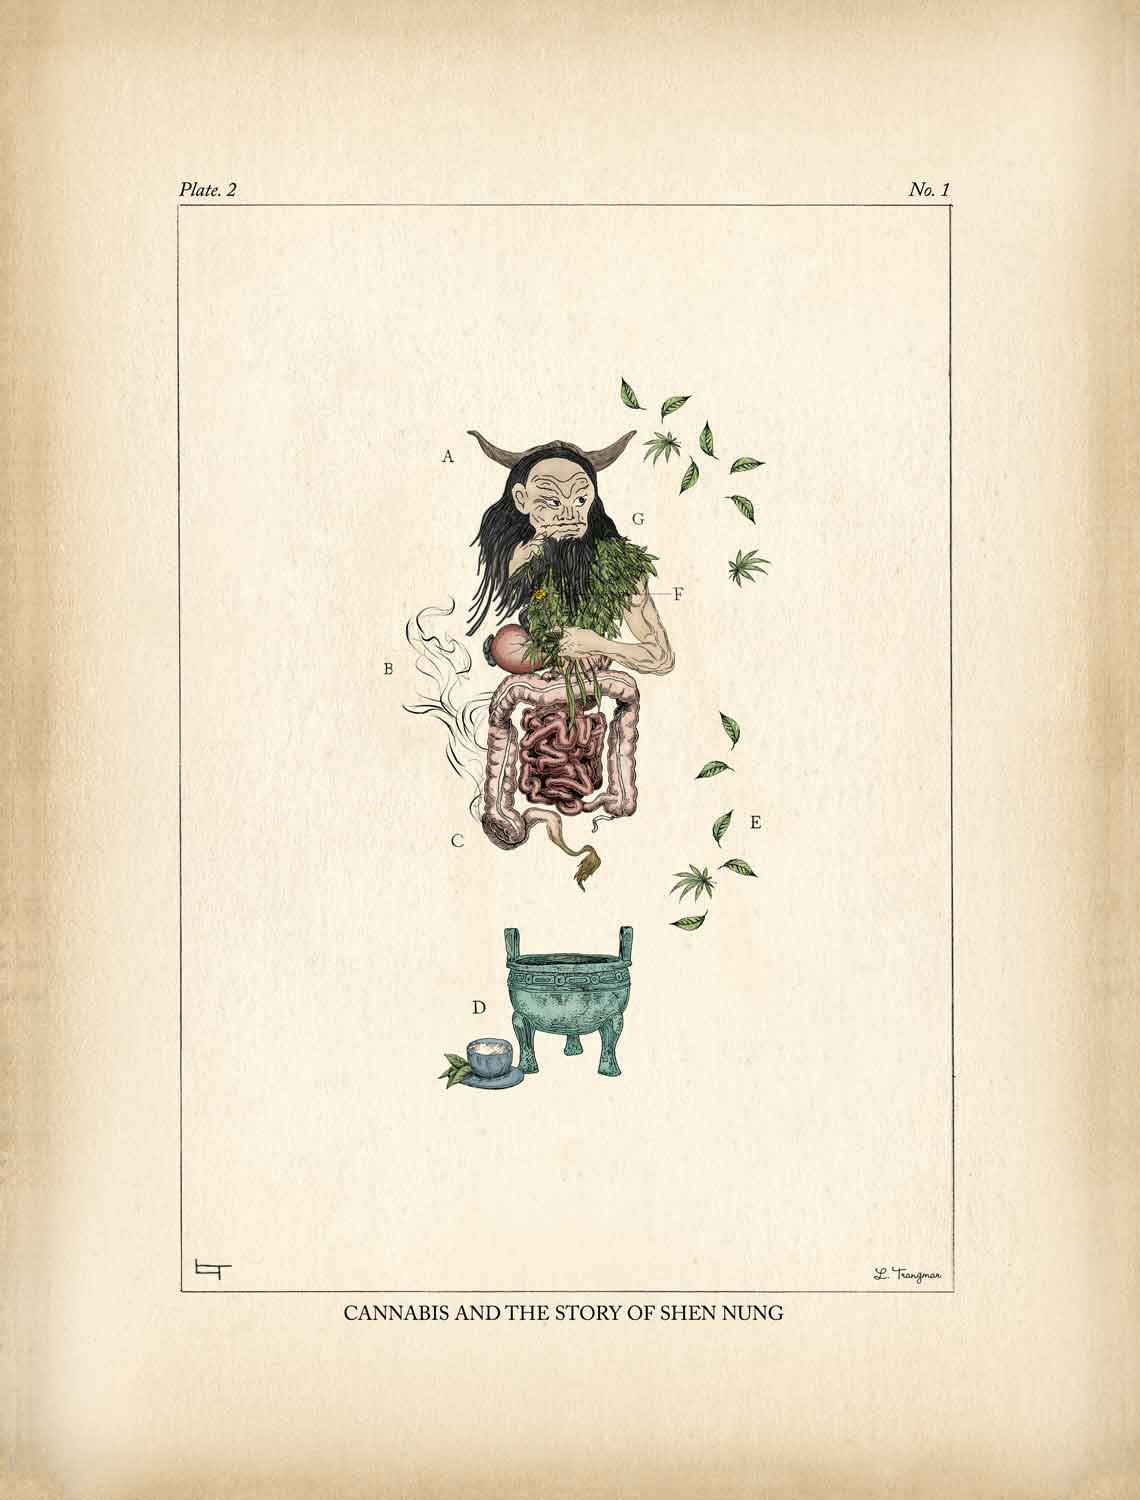 Cannabis and the Story of Shen Nung